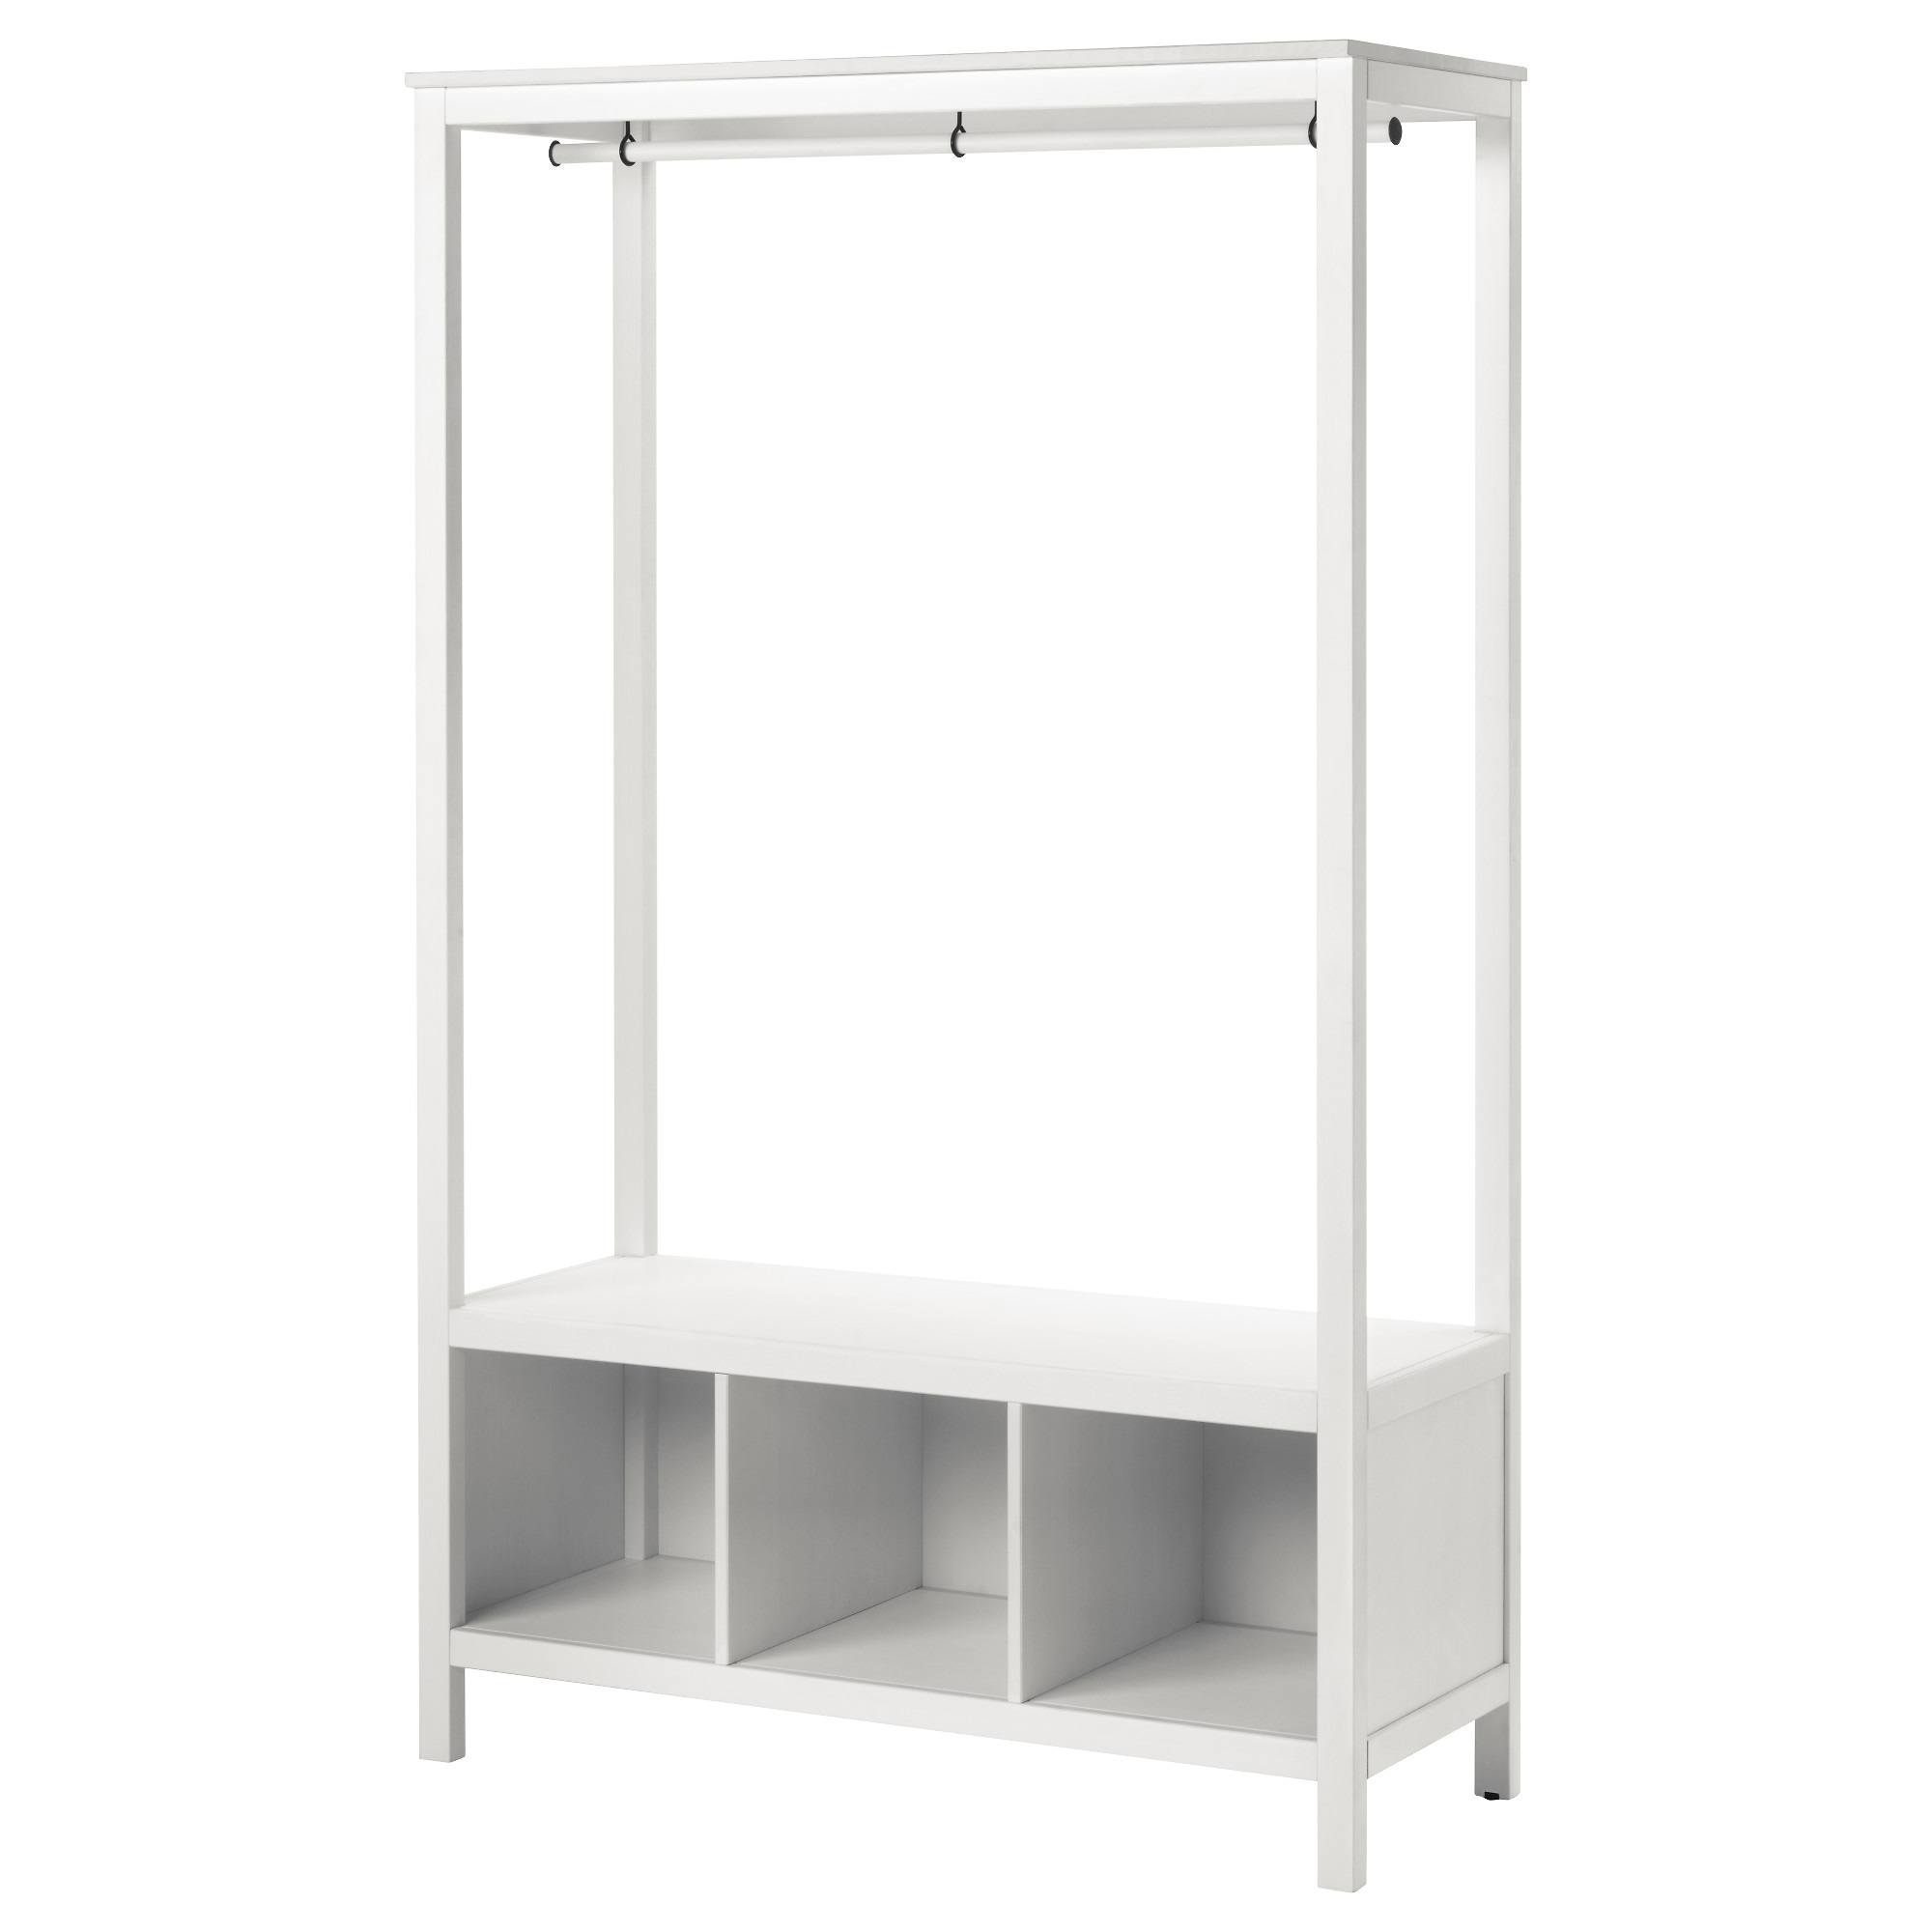 HEMNES Open Wardrobe White Stained IKEA - Ikea wardrobe